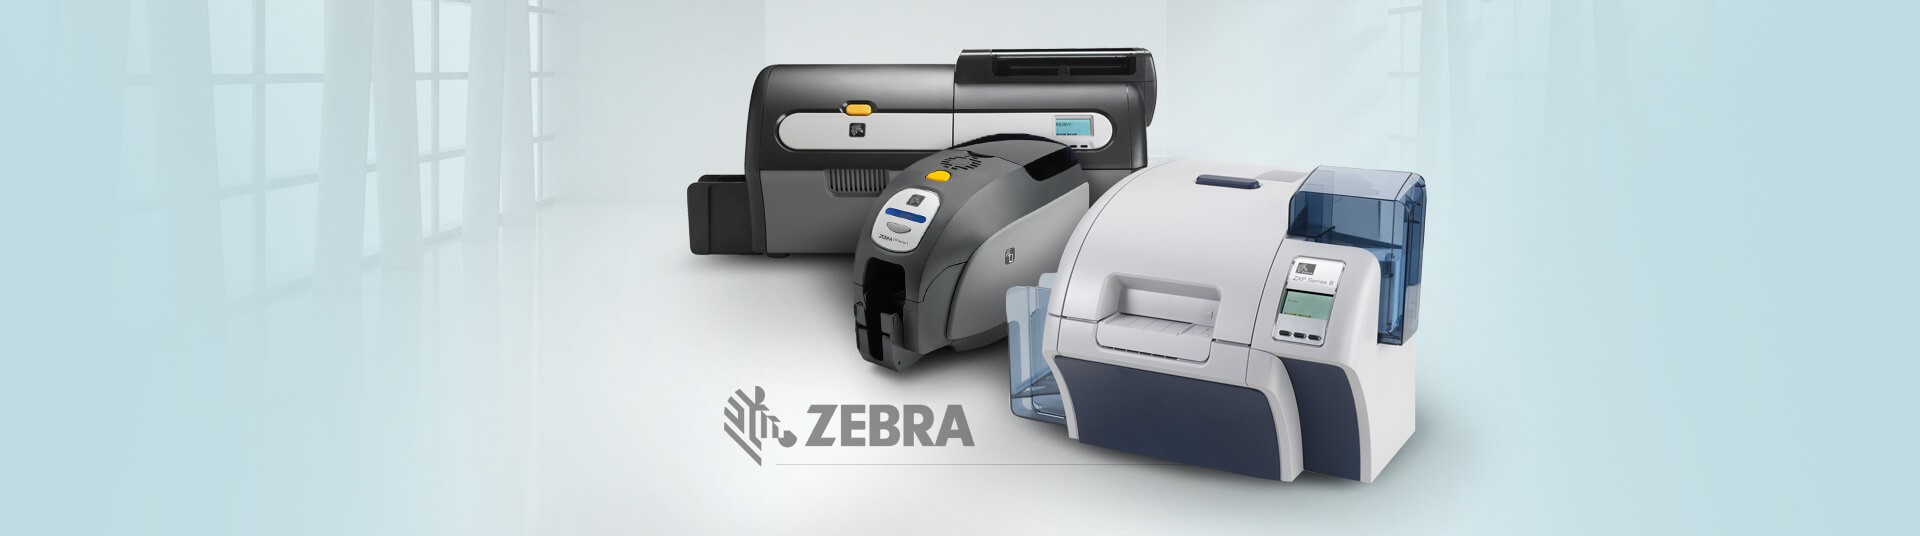 Zebra Badge Printer for College and University IDs